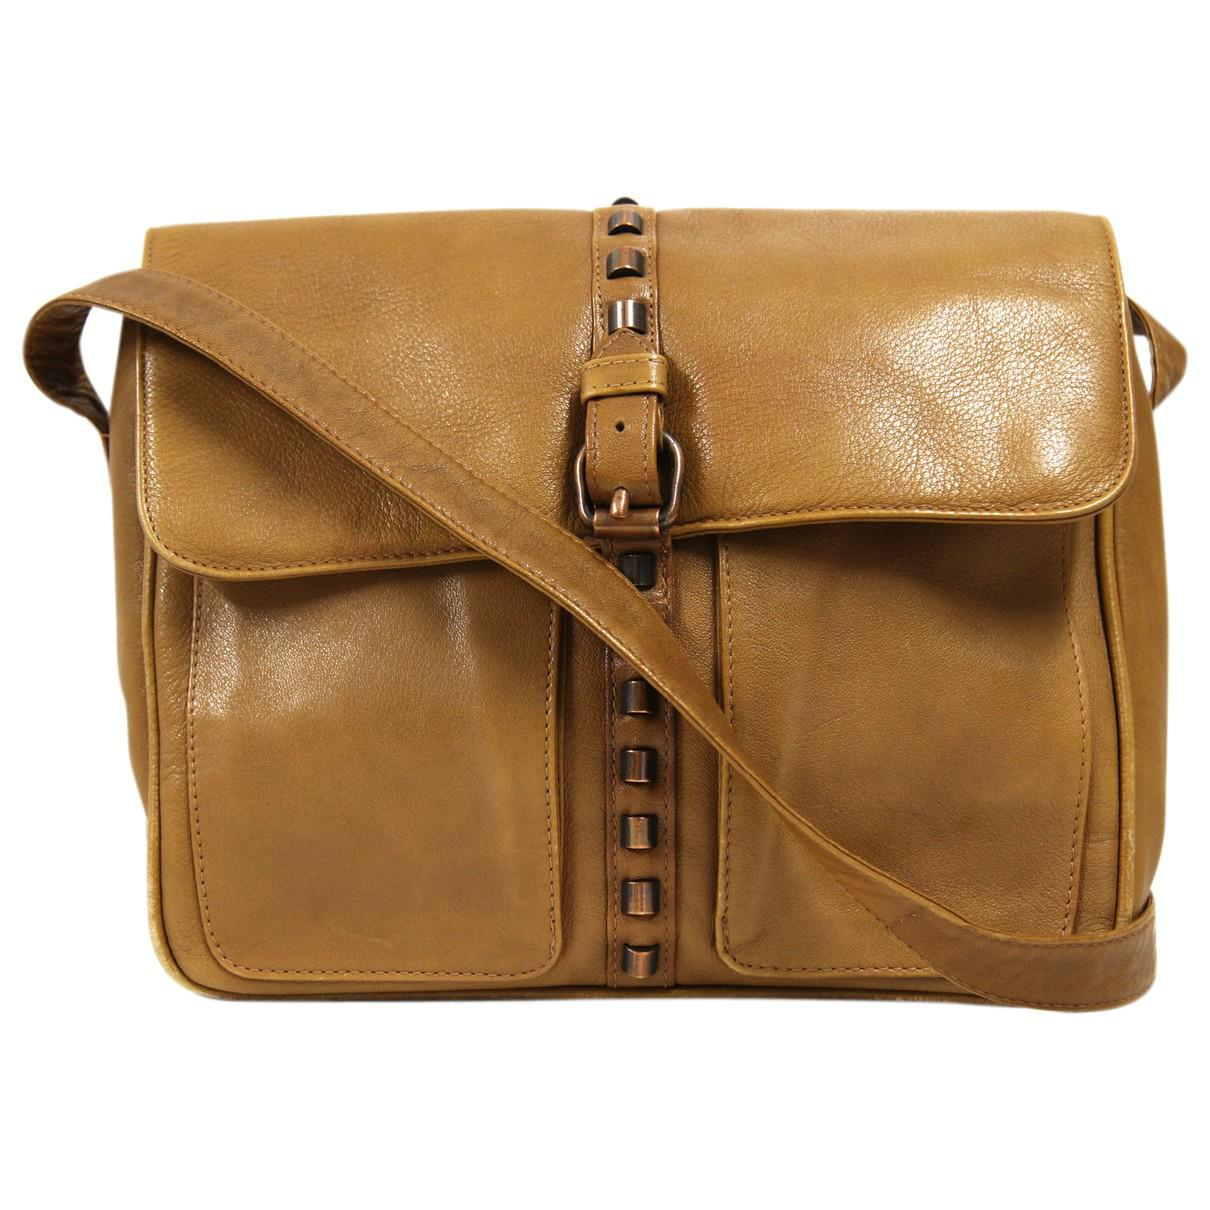 Versace Leather Crossbody Bag in Natural - Lyst 563f2b0270